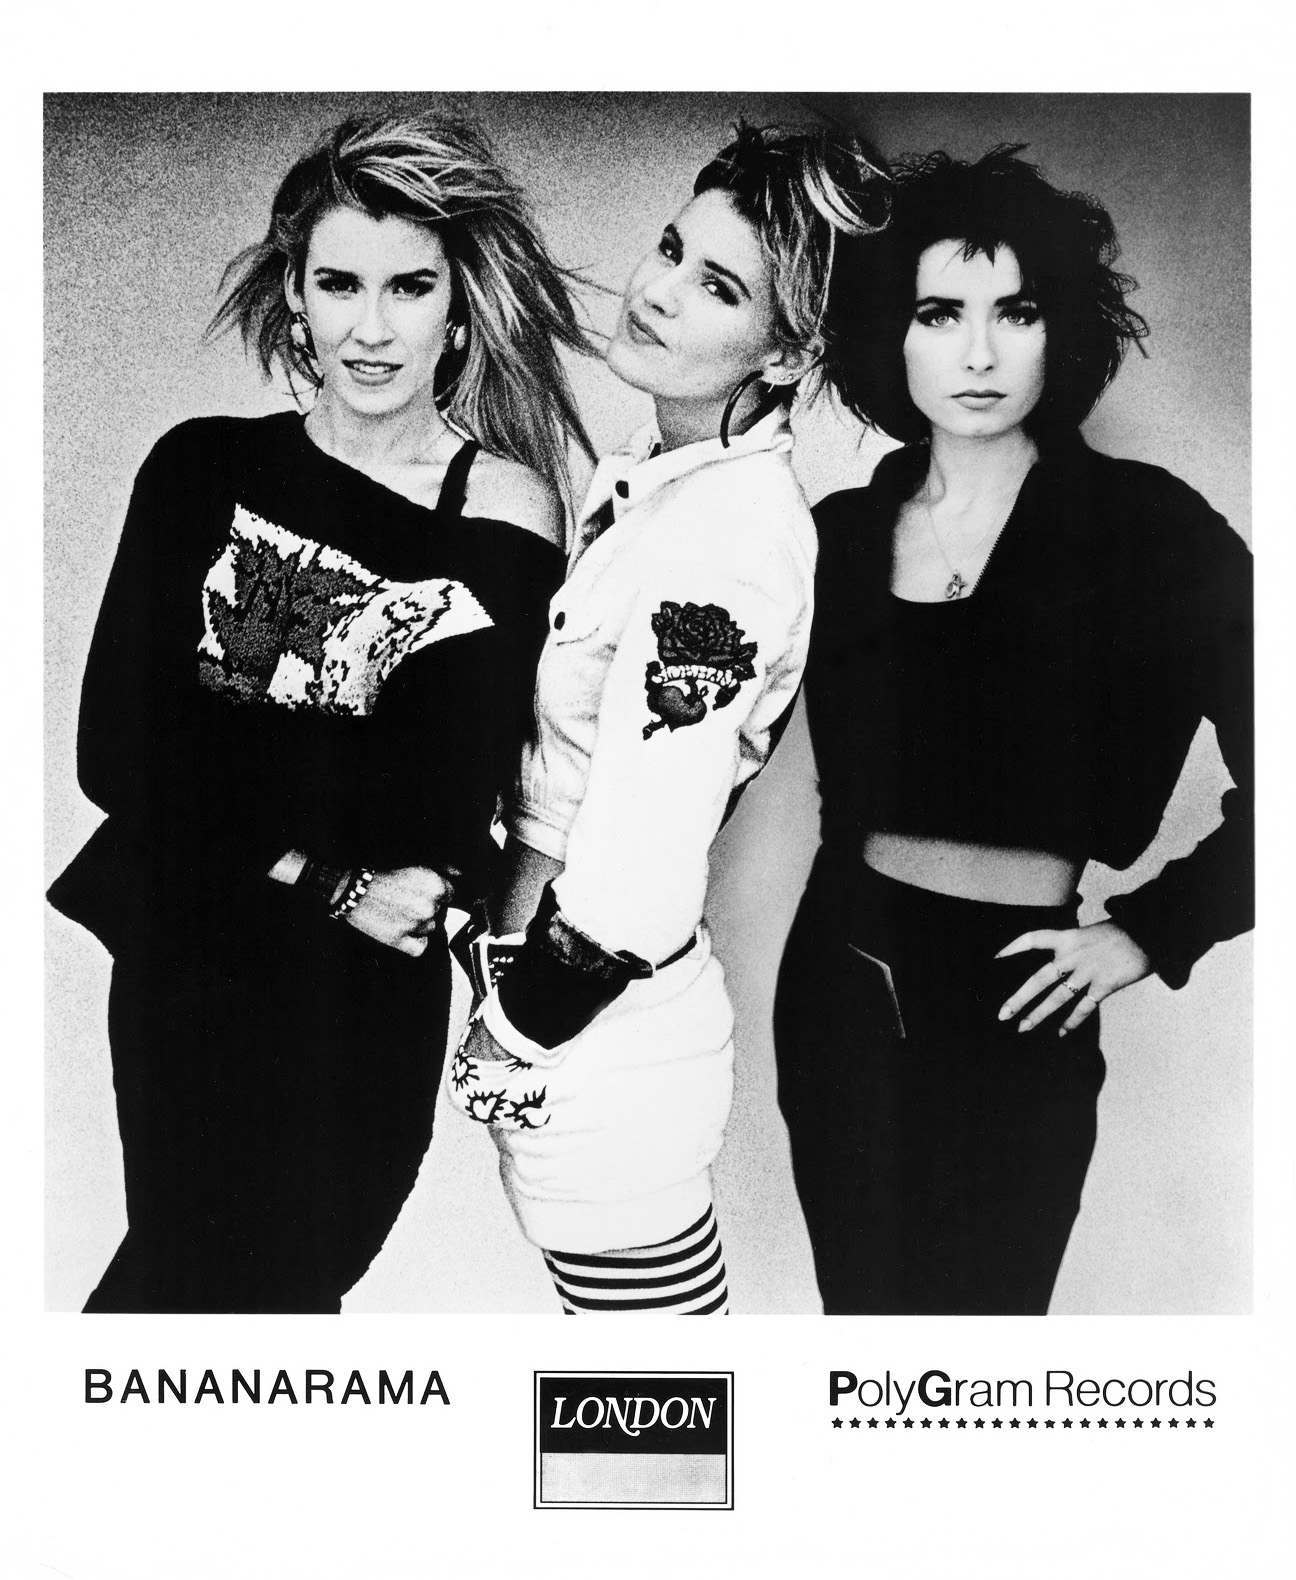 Bananarama Press Photo, London Records